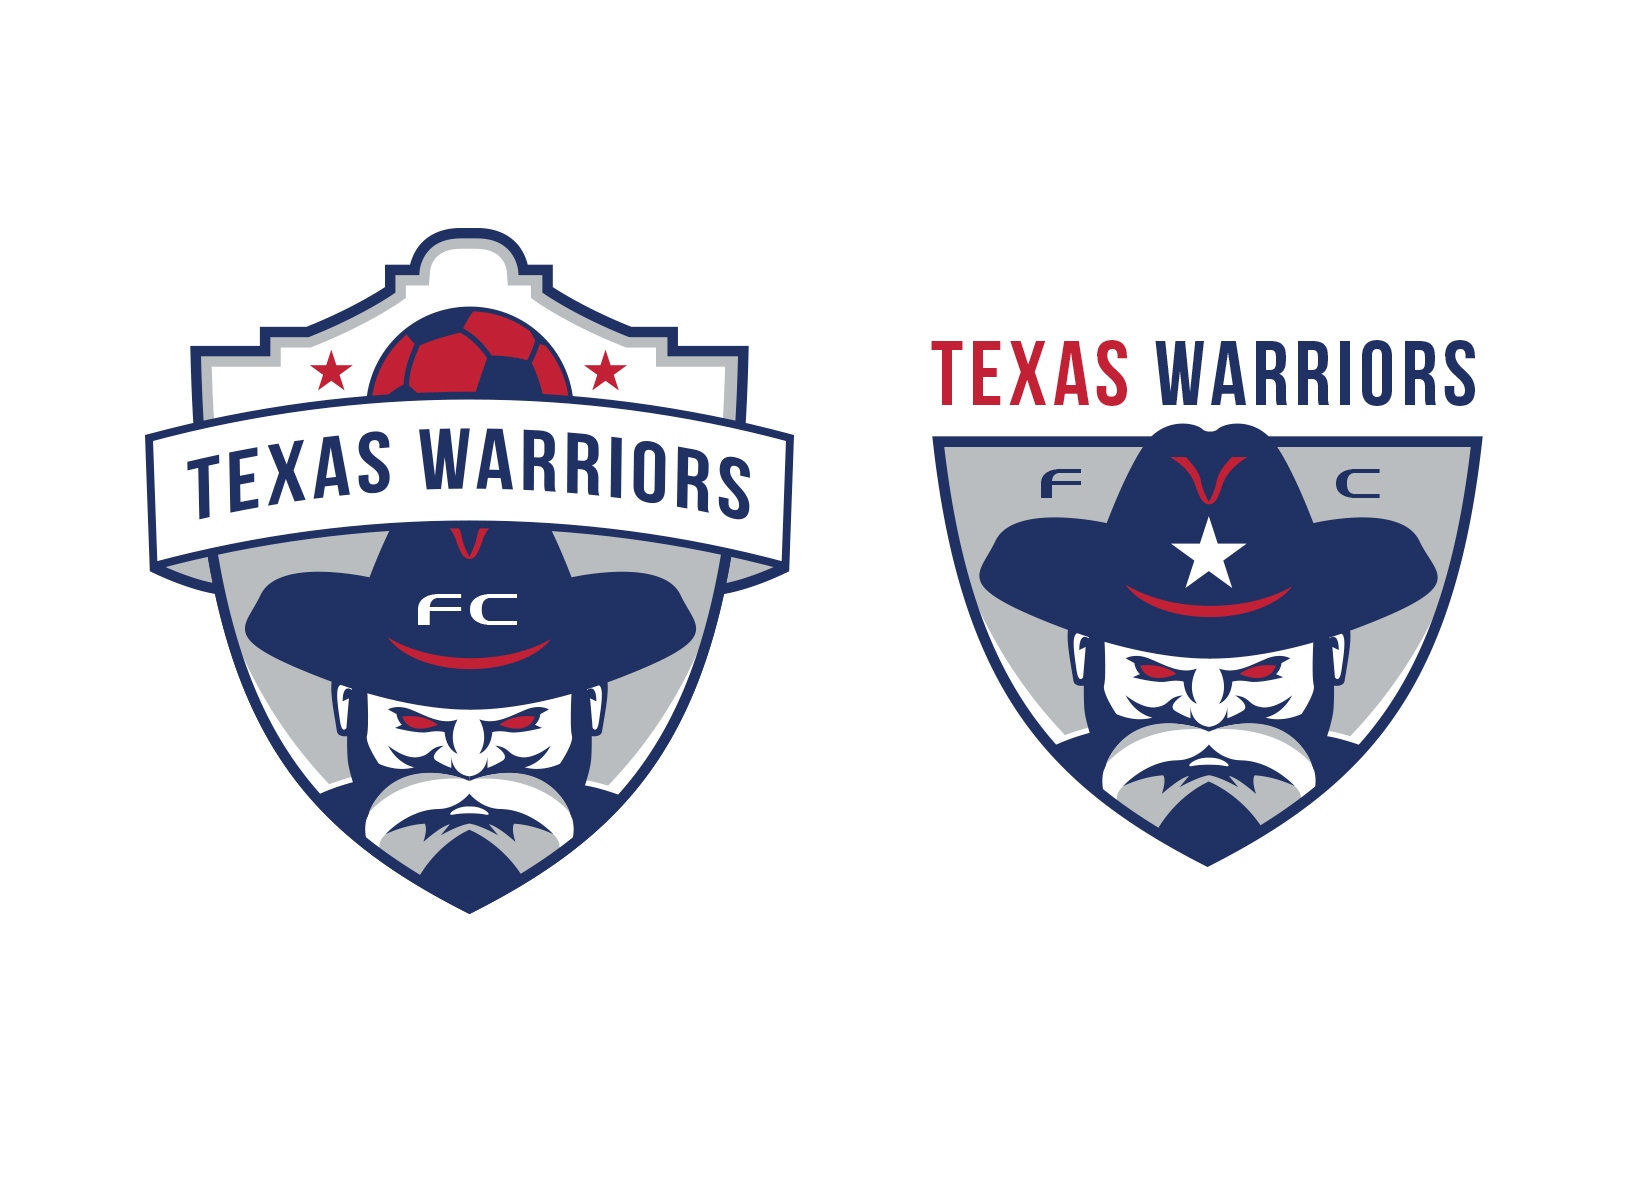 custom-soccer-logo-design-texas-team-by-jordan-fretz-2.jpg